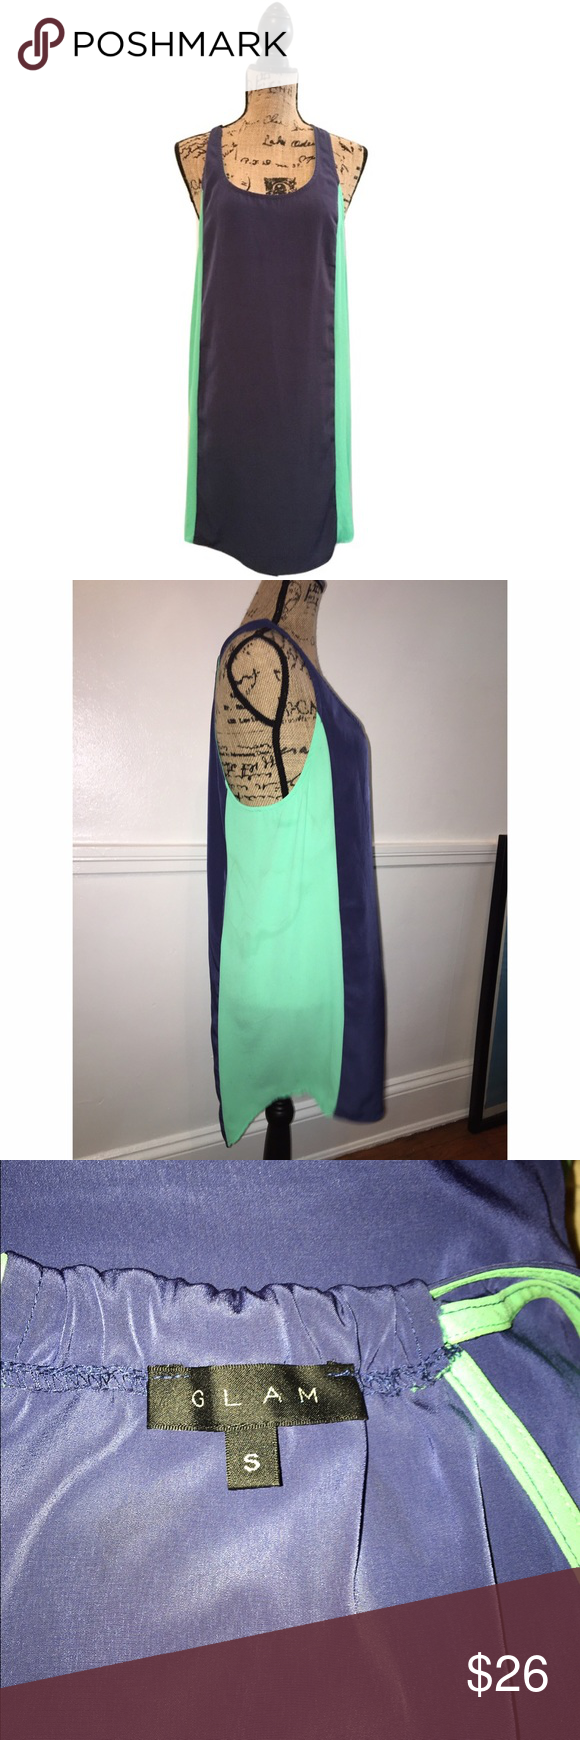 "GLAM Sz S Color Block Sleeveless Dress EUC 🔸GLAM Sz S Color Block Sleeveless Dress EUC🔸Size S🔸 Green navy blue colors🔸Racer back🔸Sleeveless🔸Polyester🔸Round neck🔸Bust 32-34🔸Length 35""🔸Pre owned EUC no rips, stains or holes! GLAM Dresses"